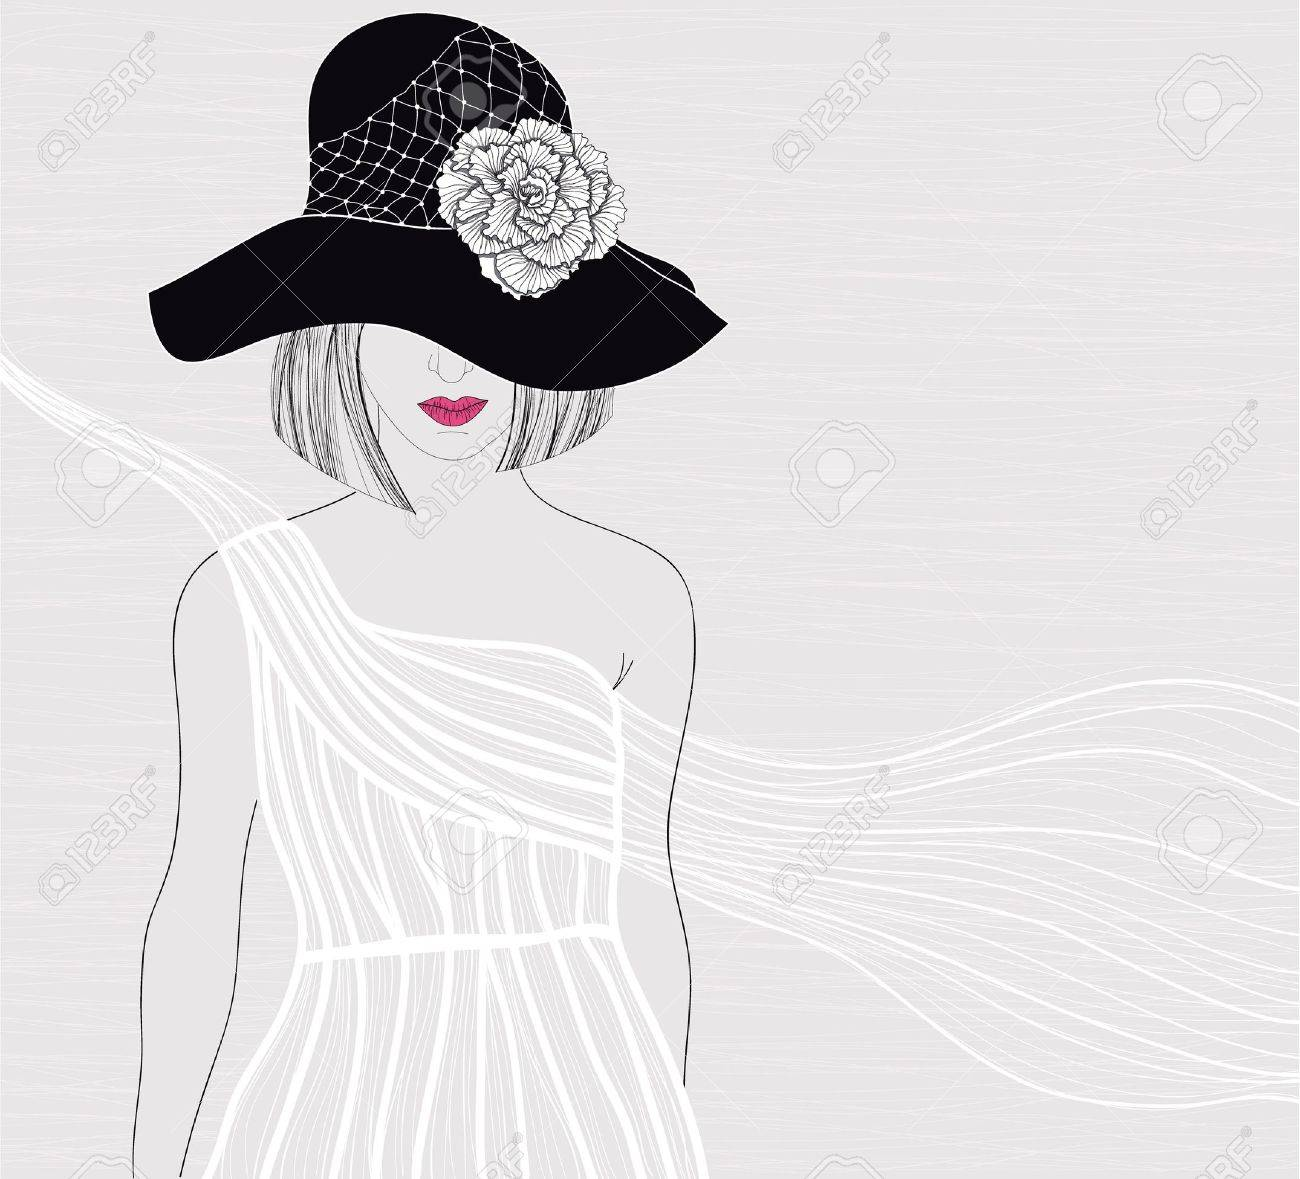 Elegant background with women in beautiful white dress. Female with hat and flower on it. Fashion illustration. Stock Vector - 10772631